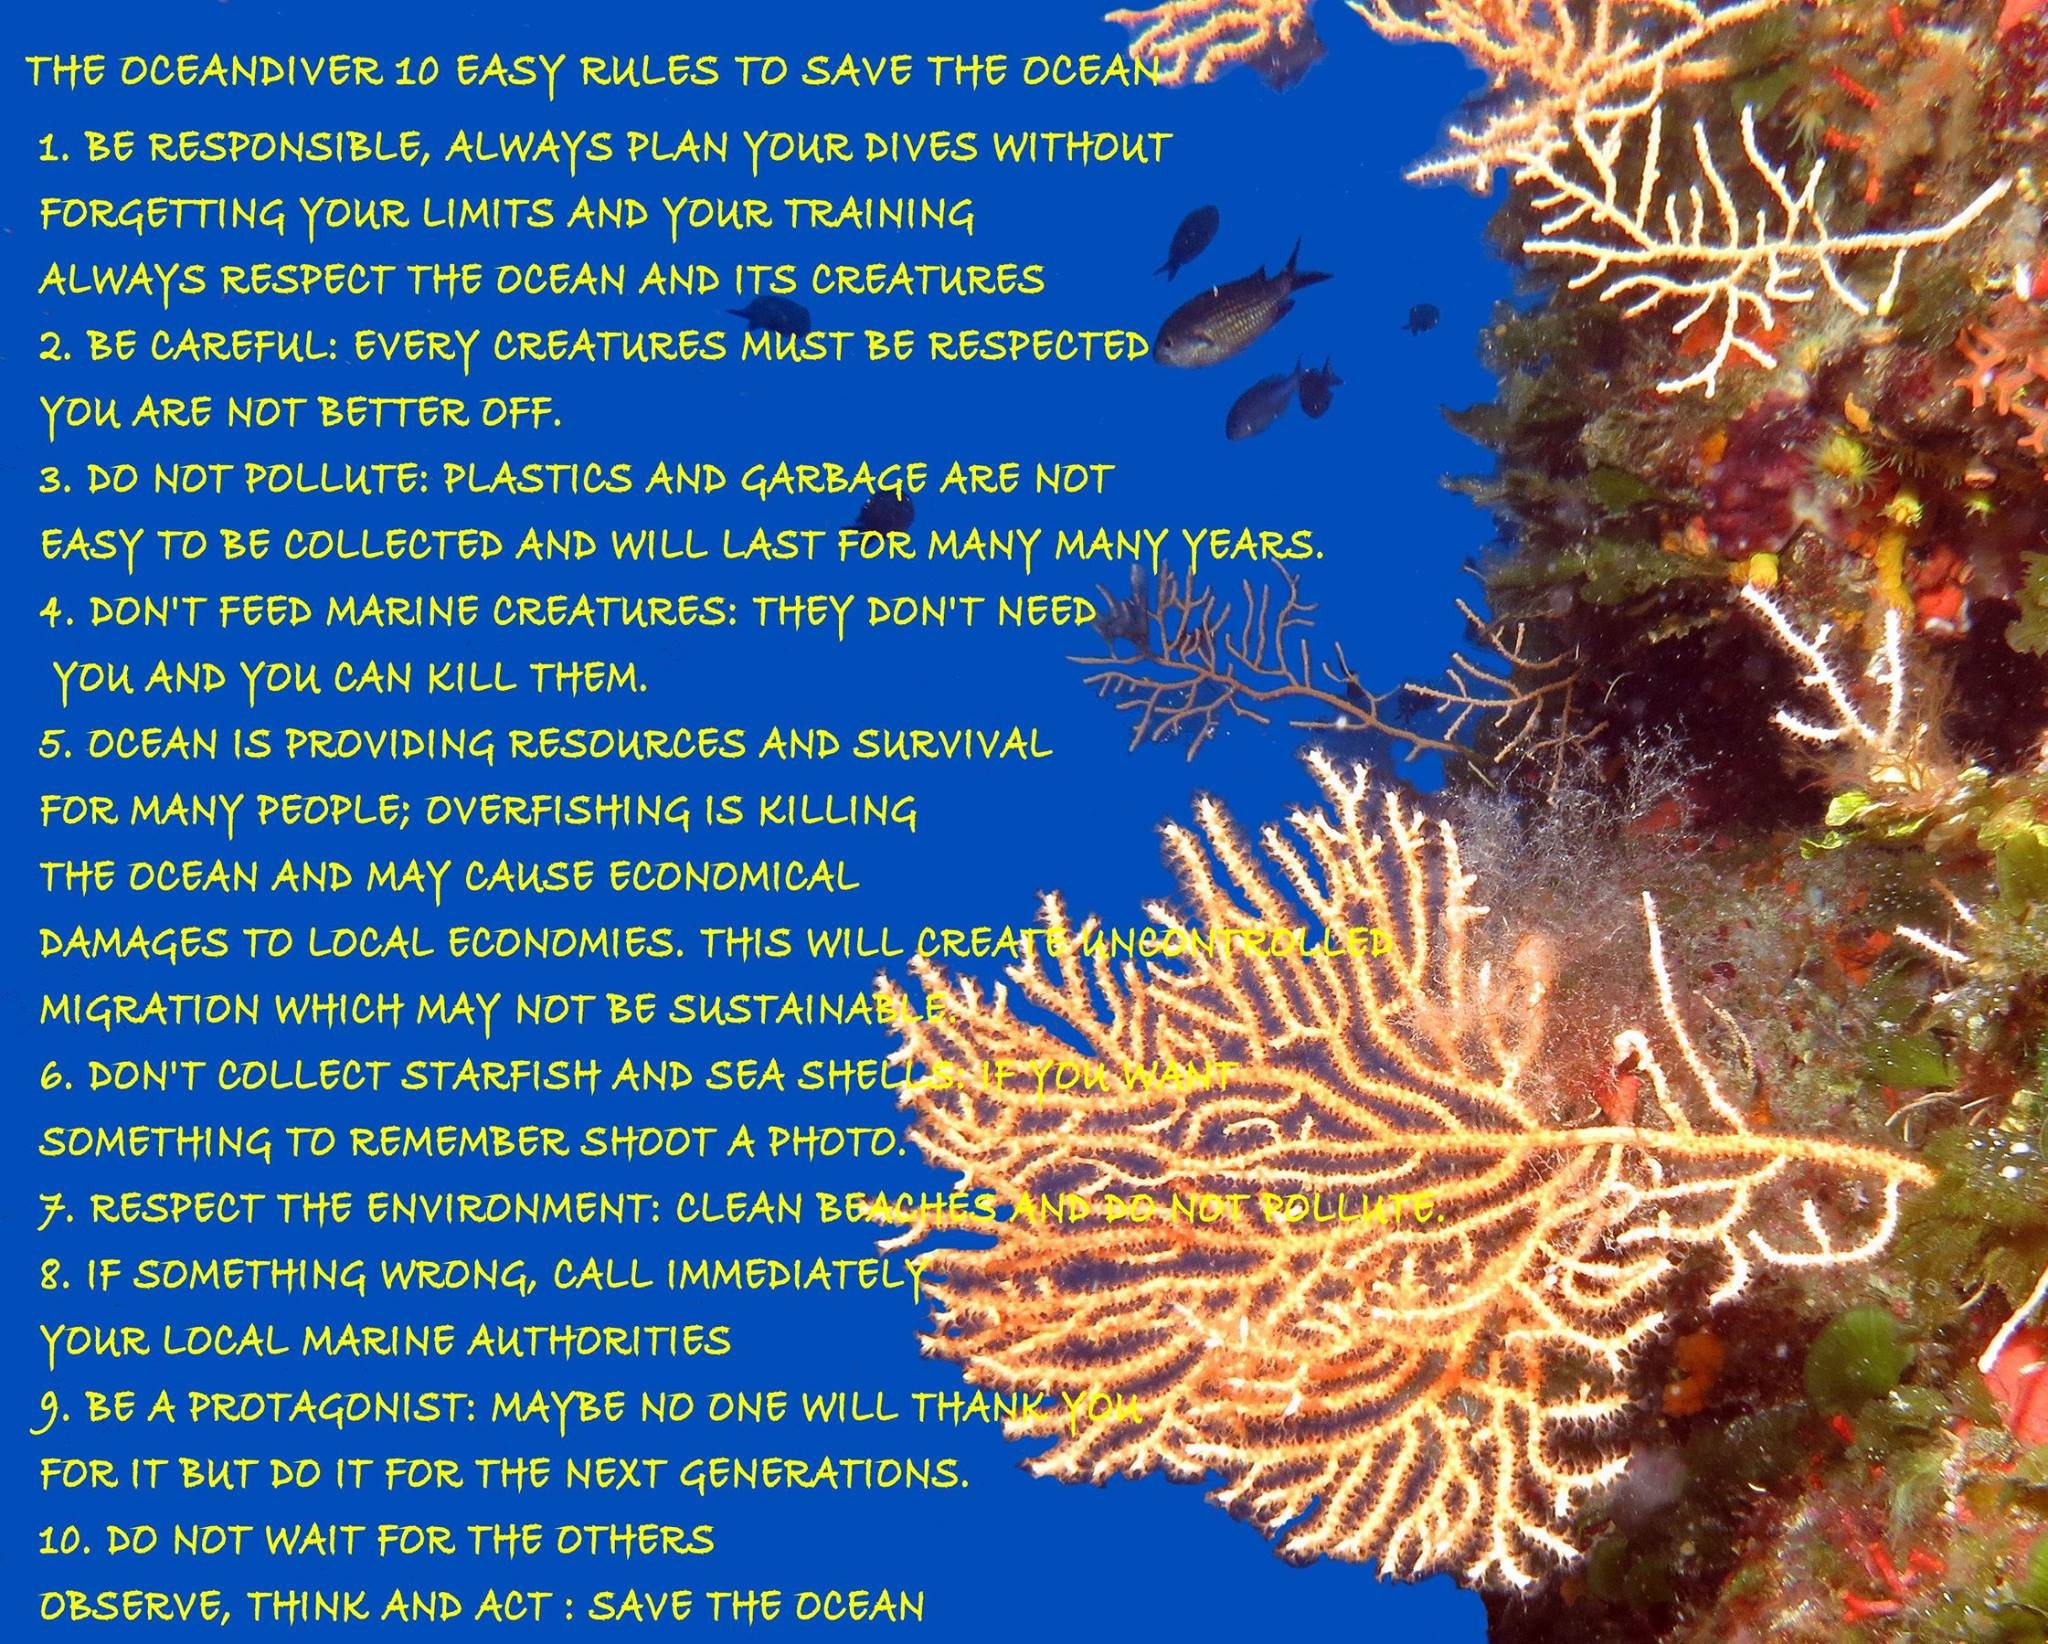 10 Easy rules to save the ocean by Oceandiver to be printed and/or shared